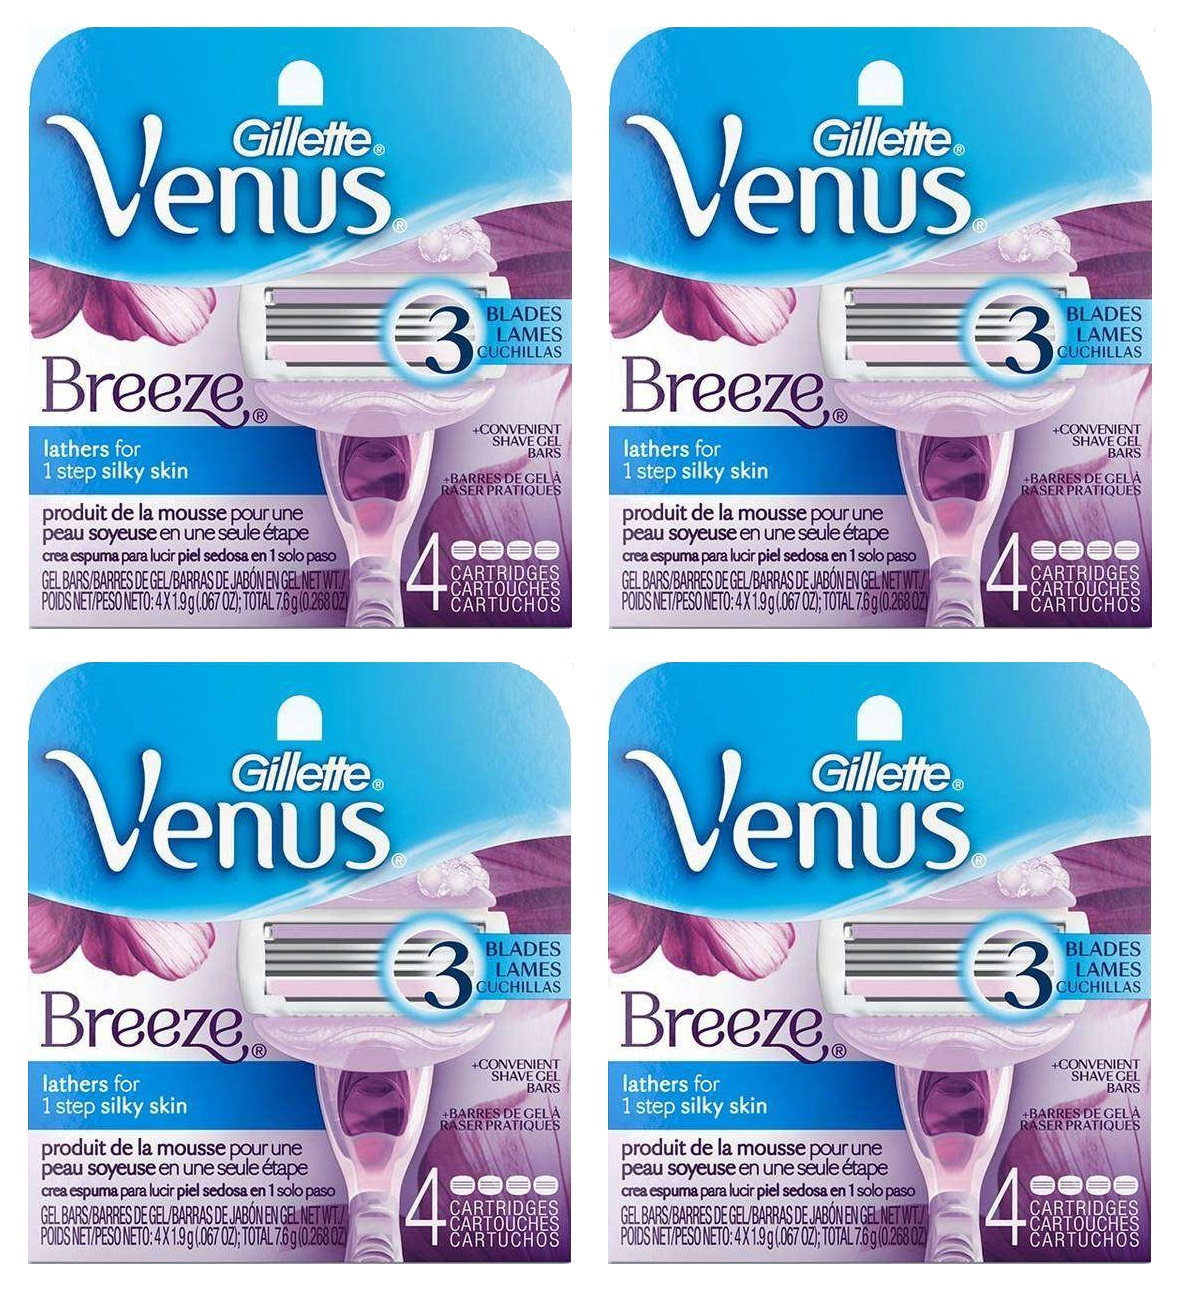 Gillette Venus Breeze Refill Razor Blade Cartridges, 4 Count (Pack of 4) + 3 Count Eyebrow Trimmer